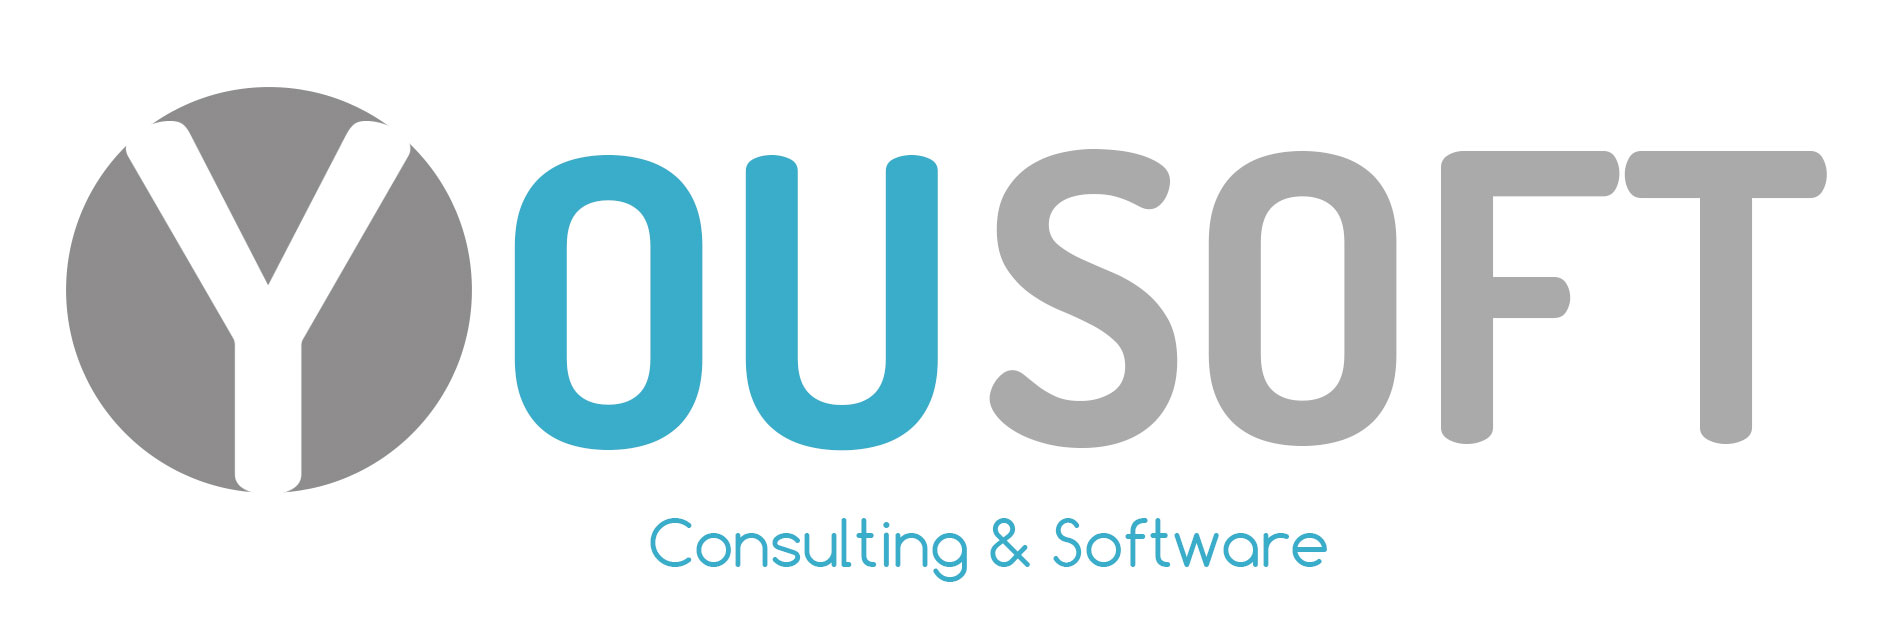 YOUSOFT S.R.L. – Consulting & Software – Lecce